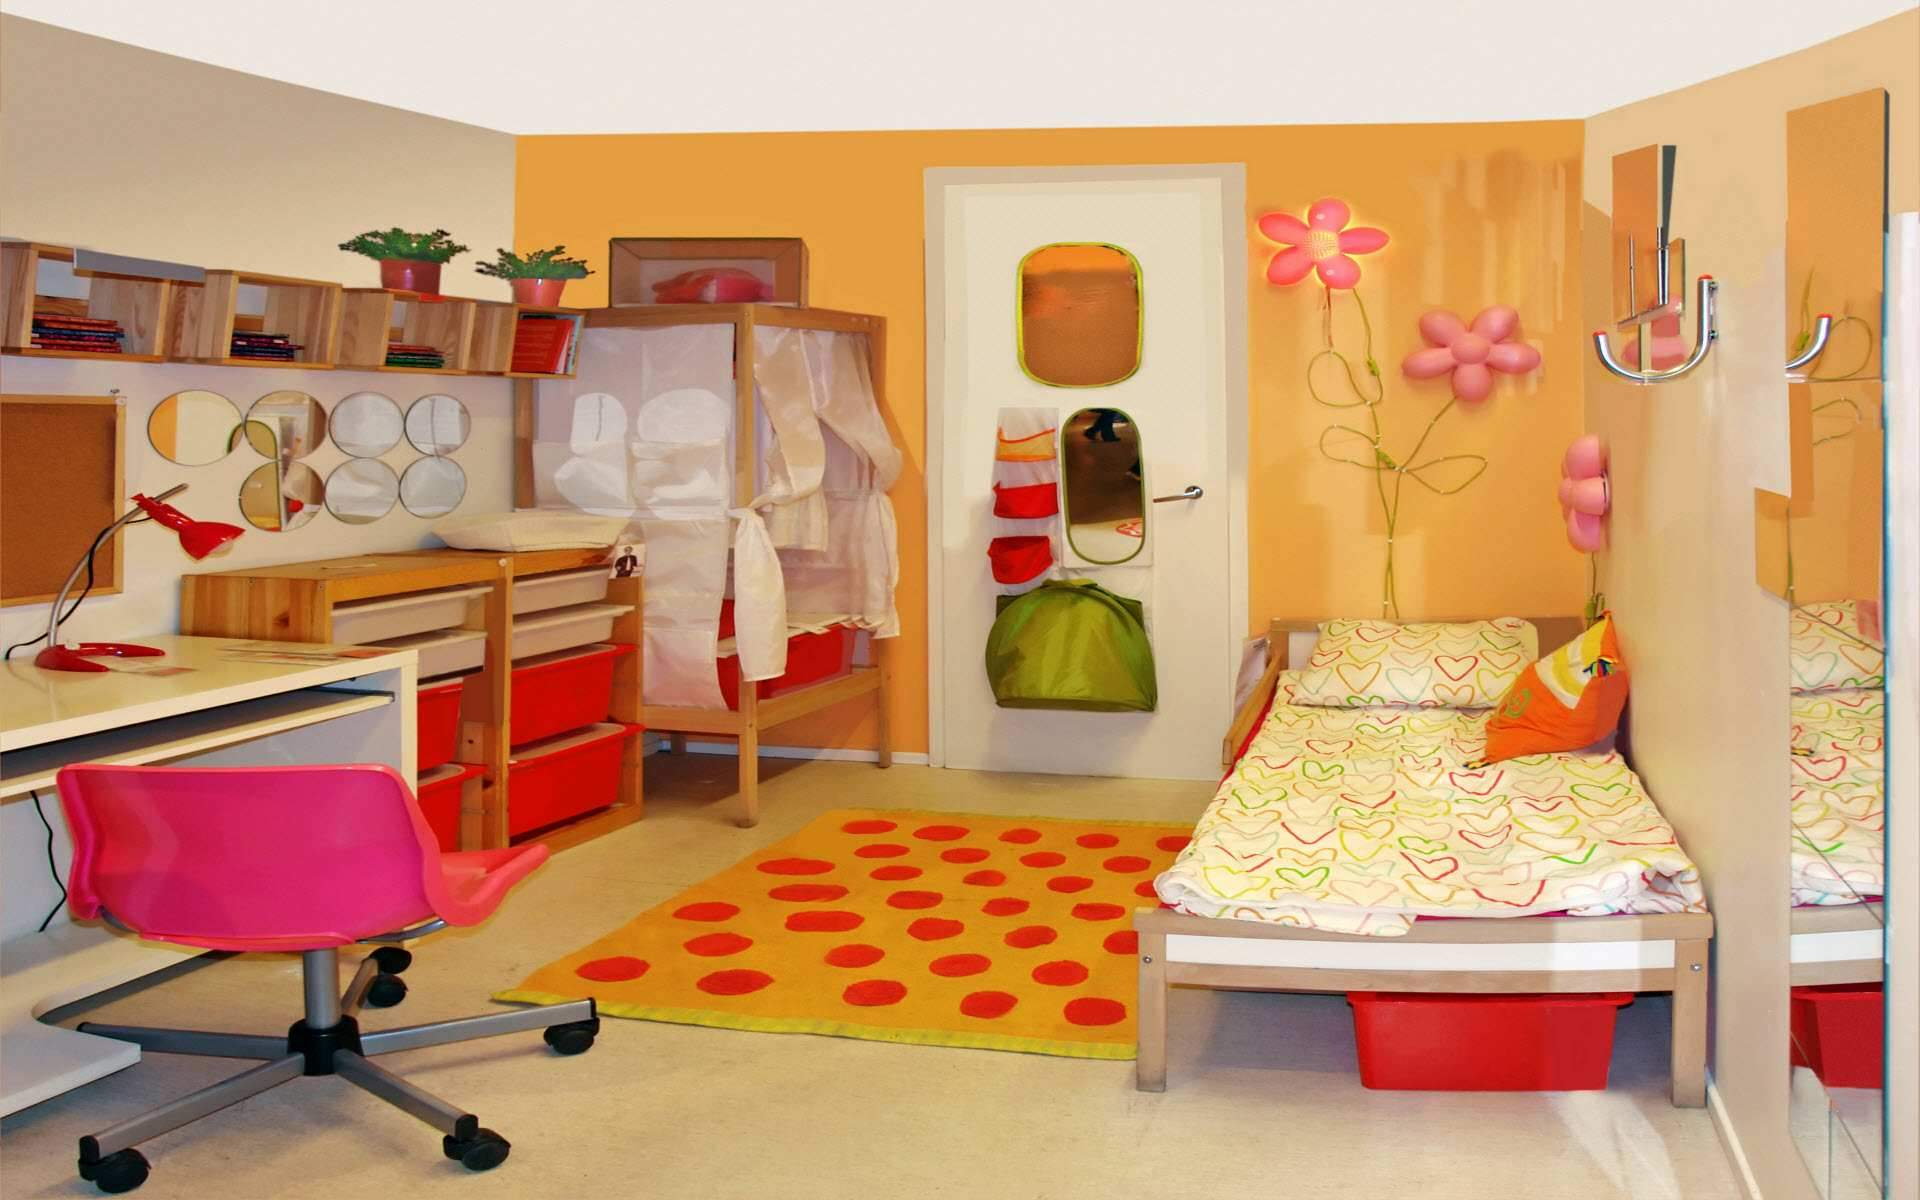 Unique small kids room decorating ideas image 012 small for Room furnishing ideas